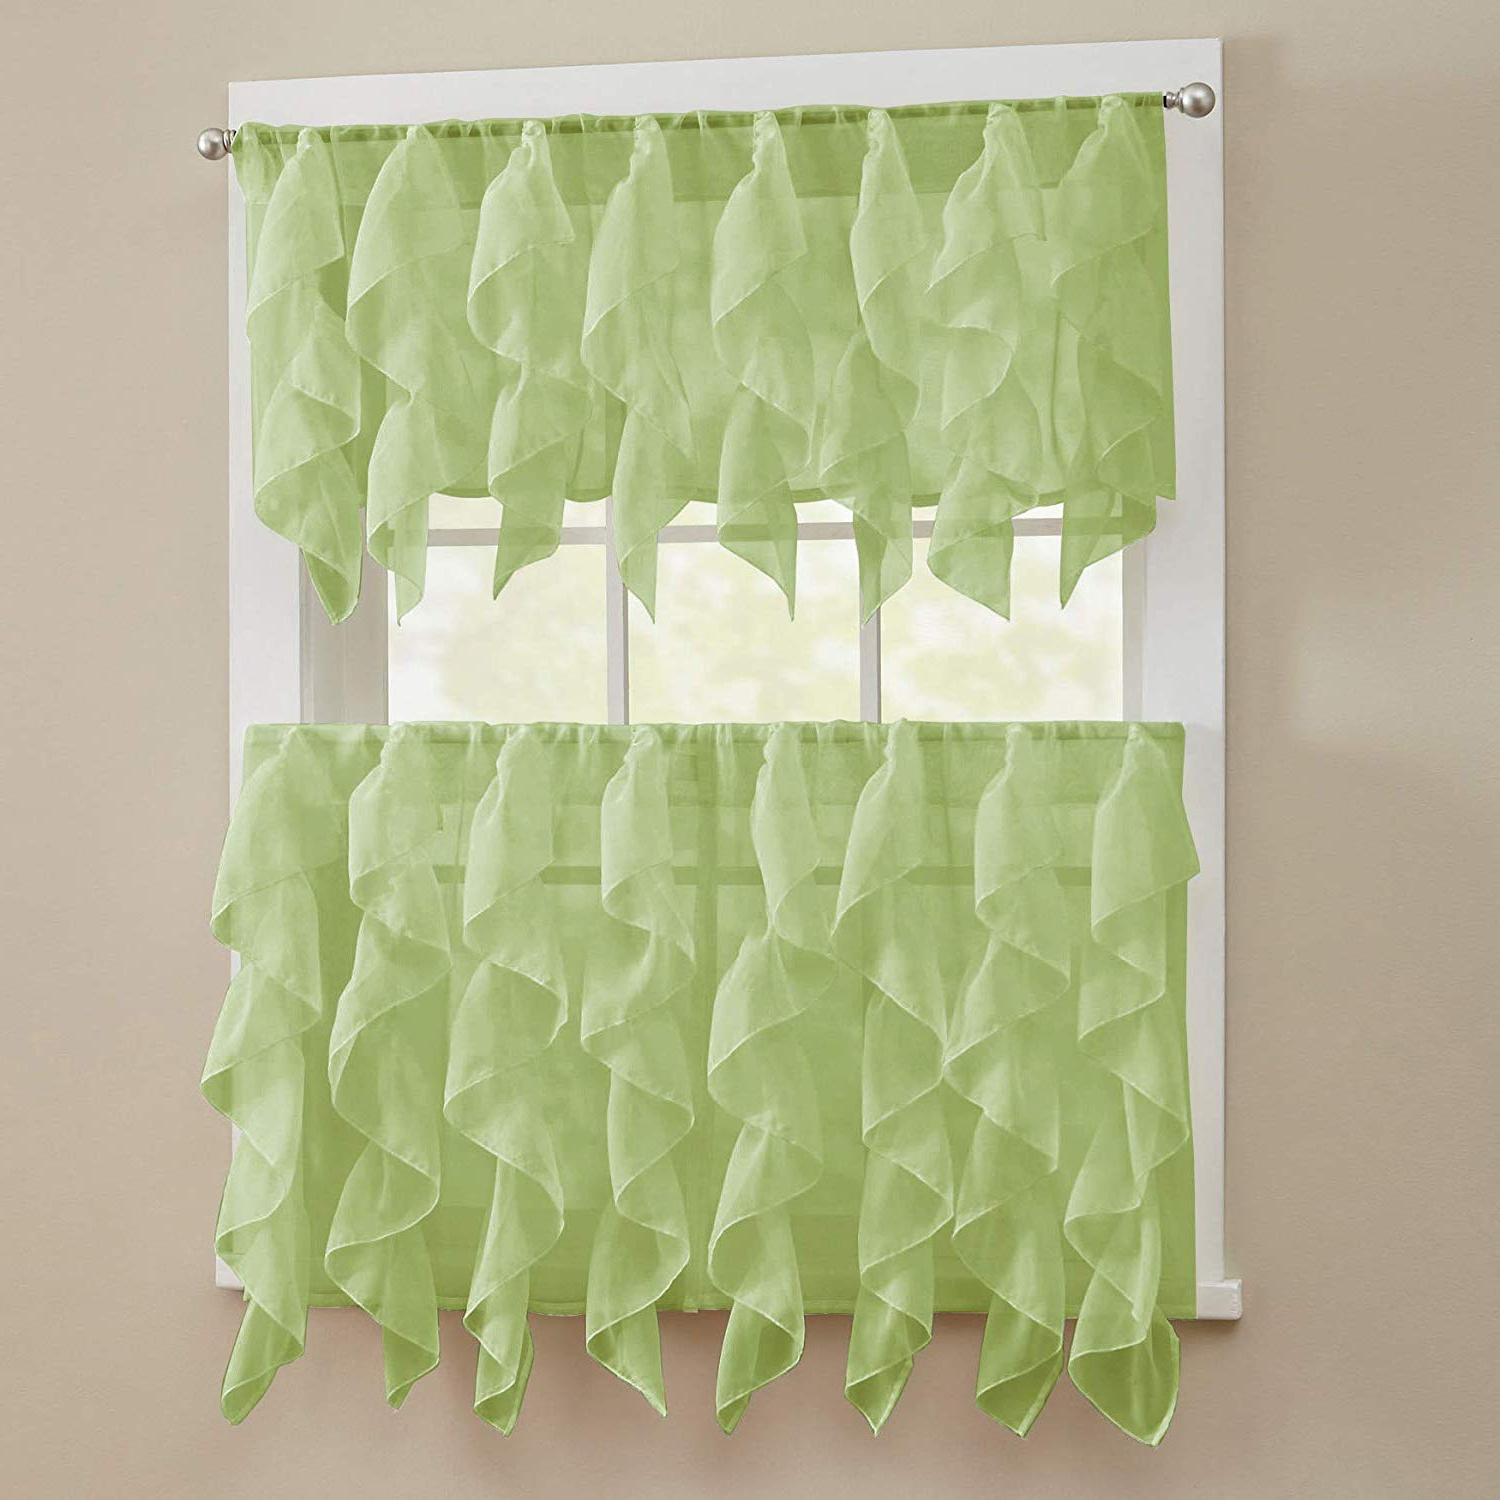 "Sweet Home Collection 3 Piece Kitchen Curtain Set Sheet Vertical Cascading Waterfall Ruffle Includes Valance & Choice Of 24"" Or 36"" Teir Pair, Tier, Pertaining To Trendy Silver Vertical Ruffled Waterfall Valance And Curtain Tiers (View 8 of 20)"